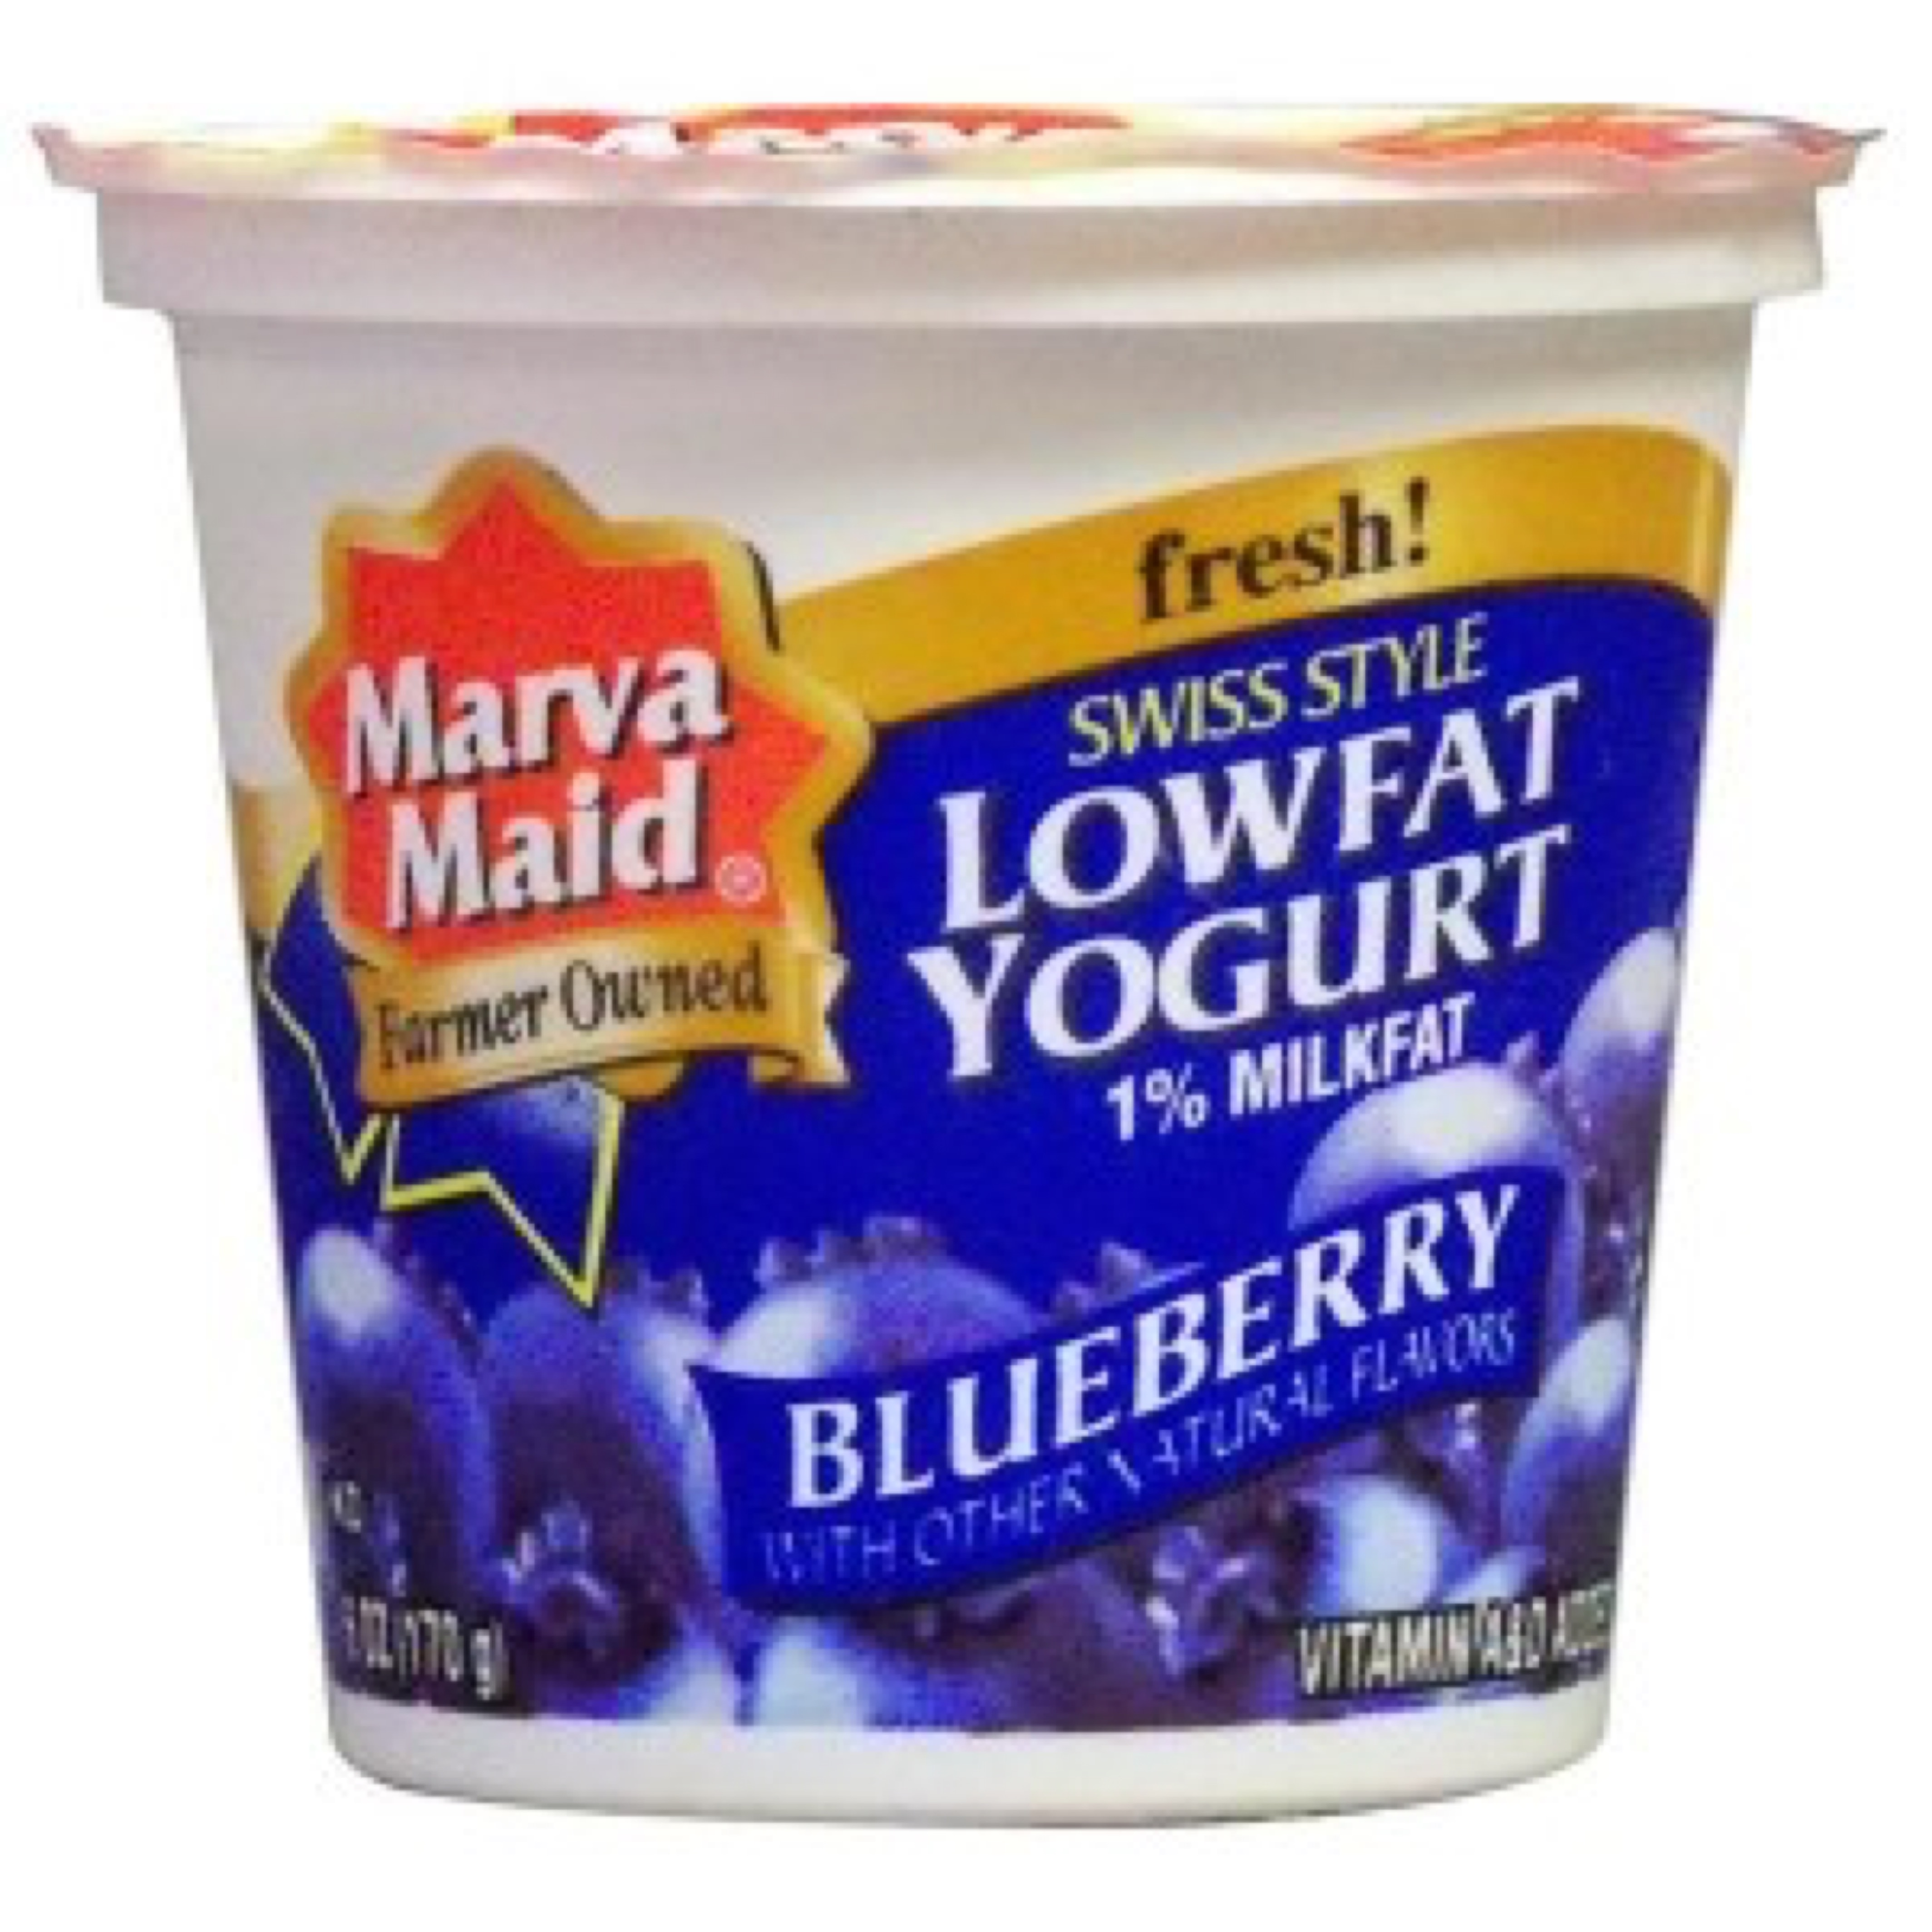 blog image - low fat yogurt